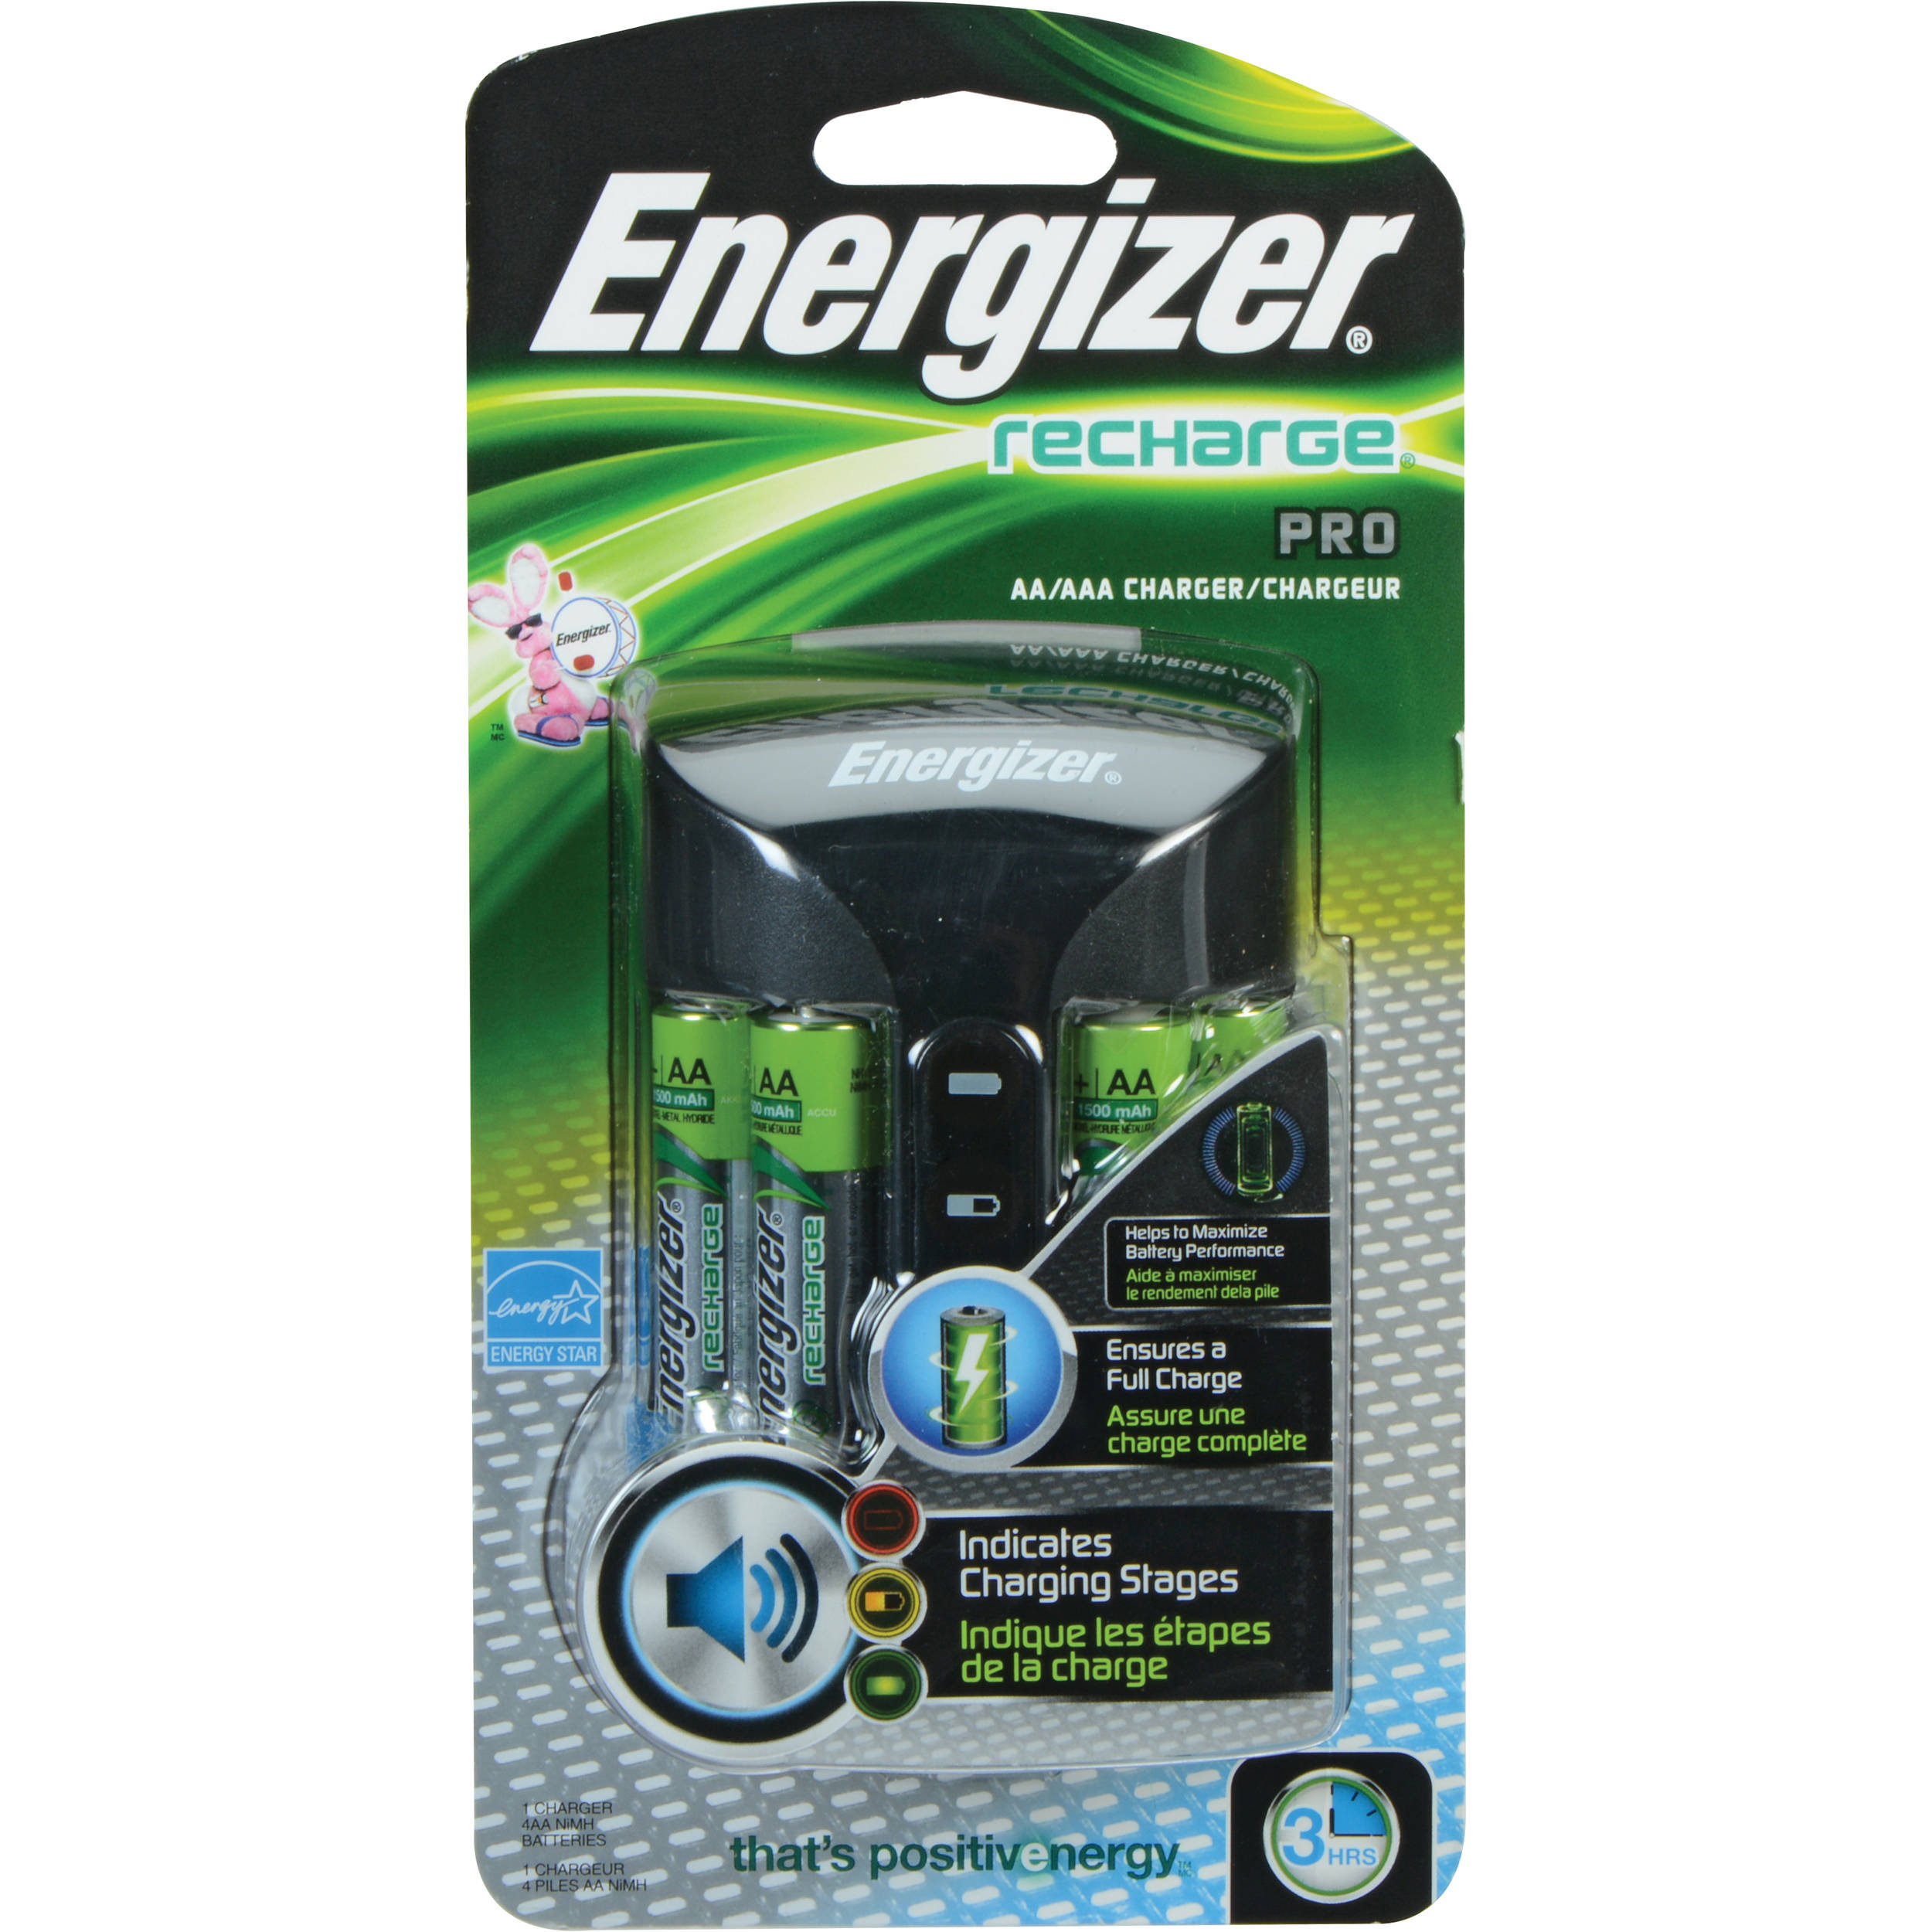 Energizer Recharge Pro Charger For Aa And Aaa Nimh